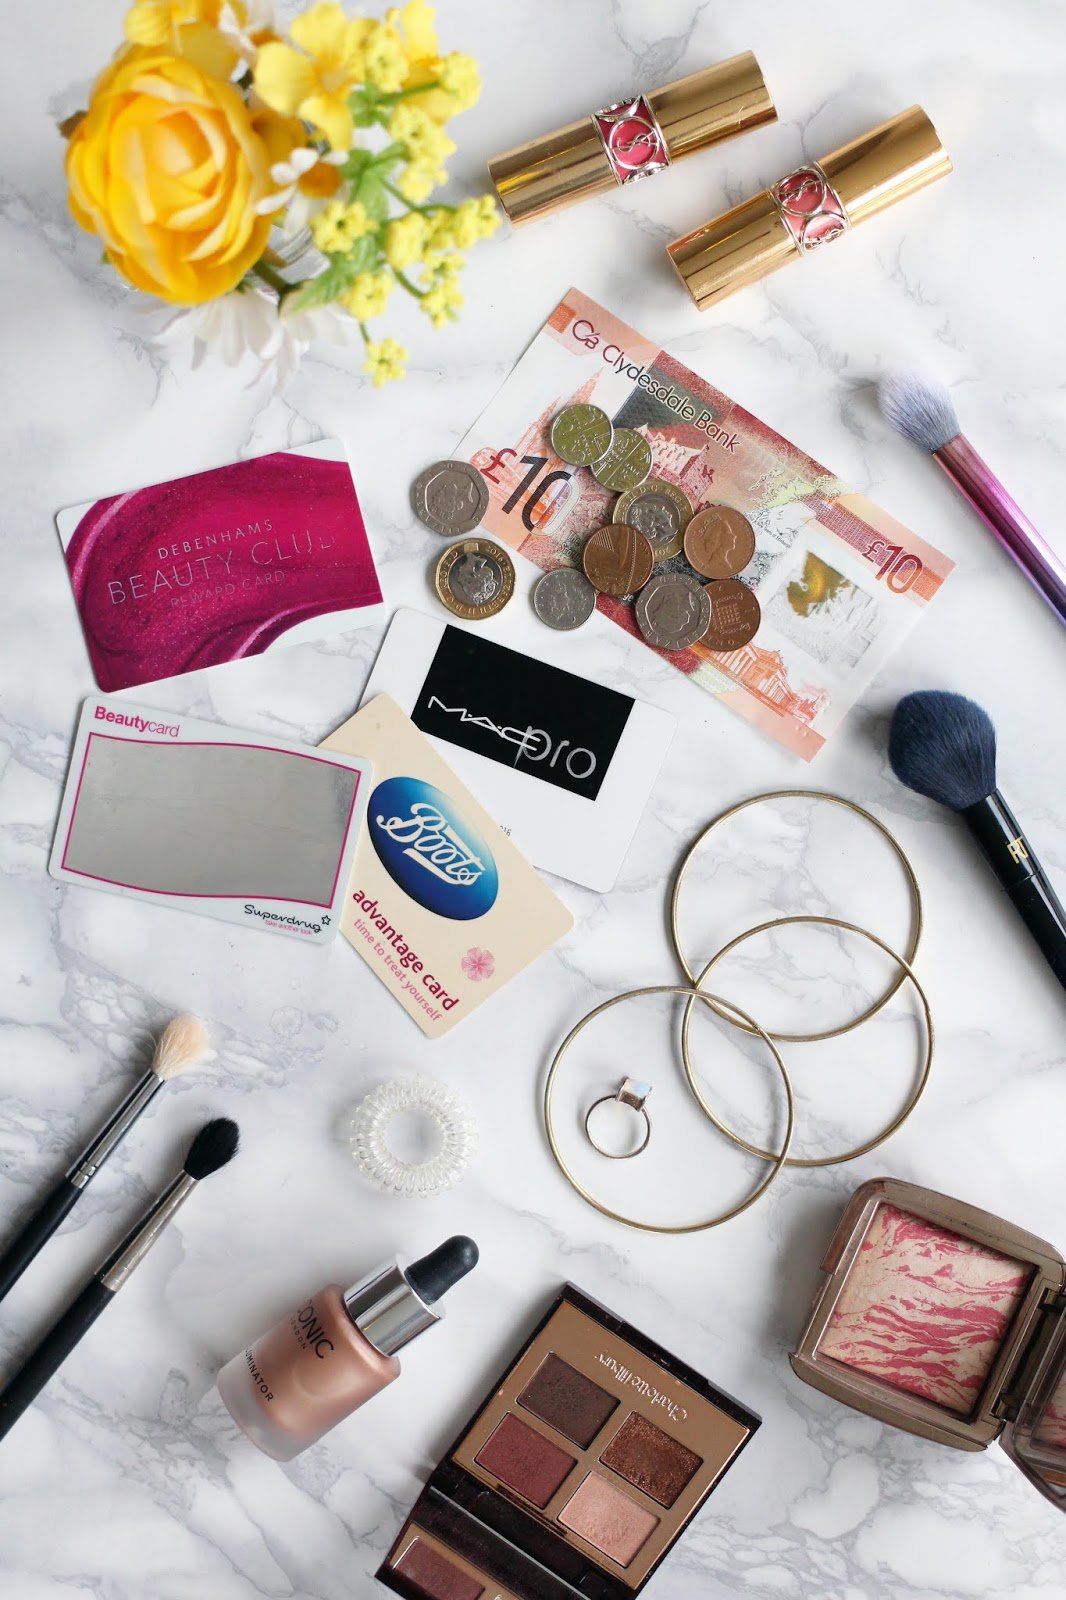 5 Ways To Save Money On Beauty & Makeup Products